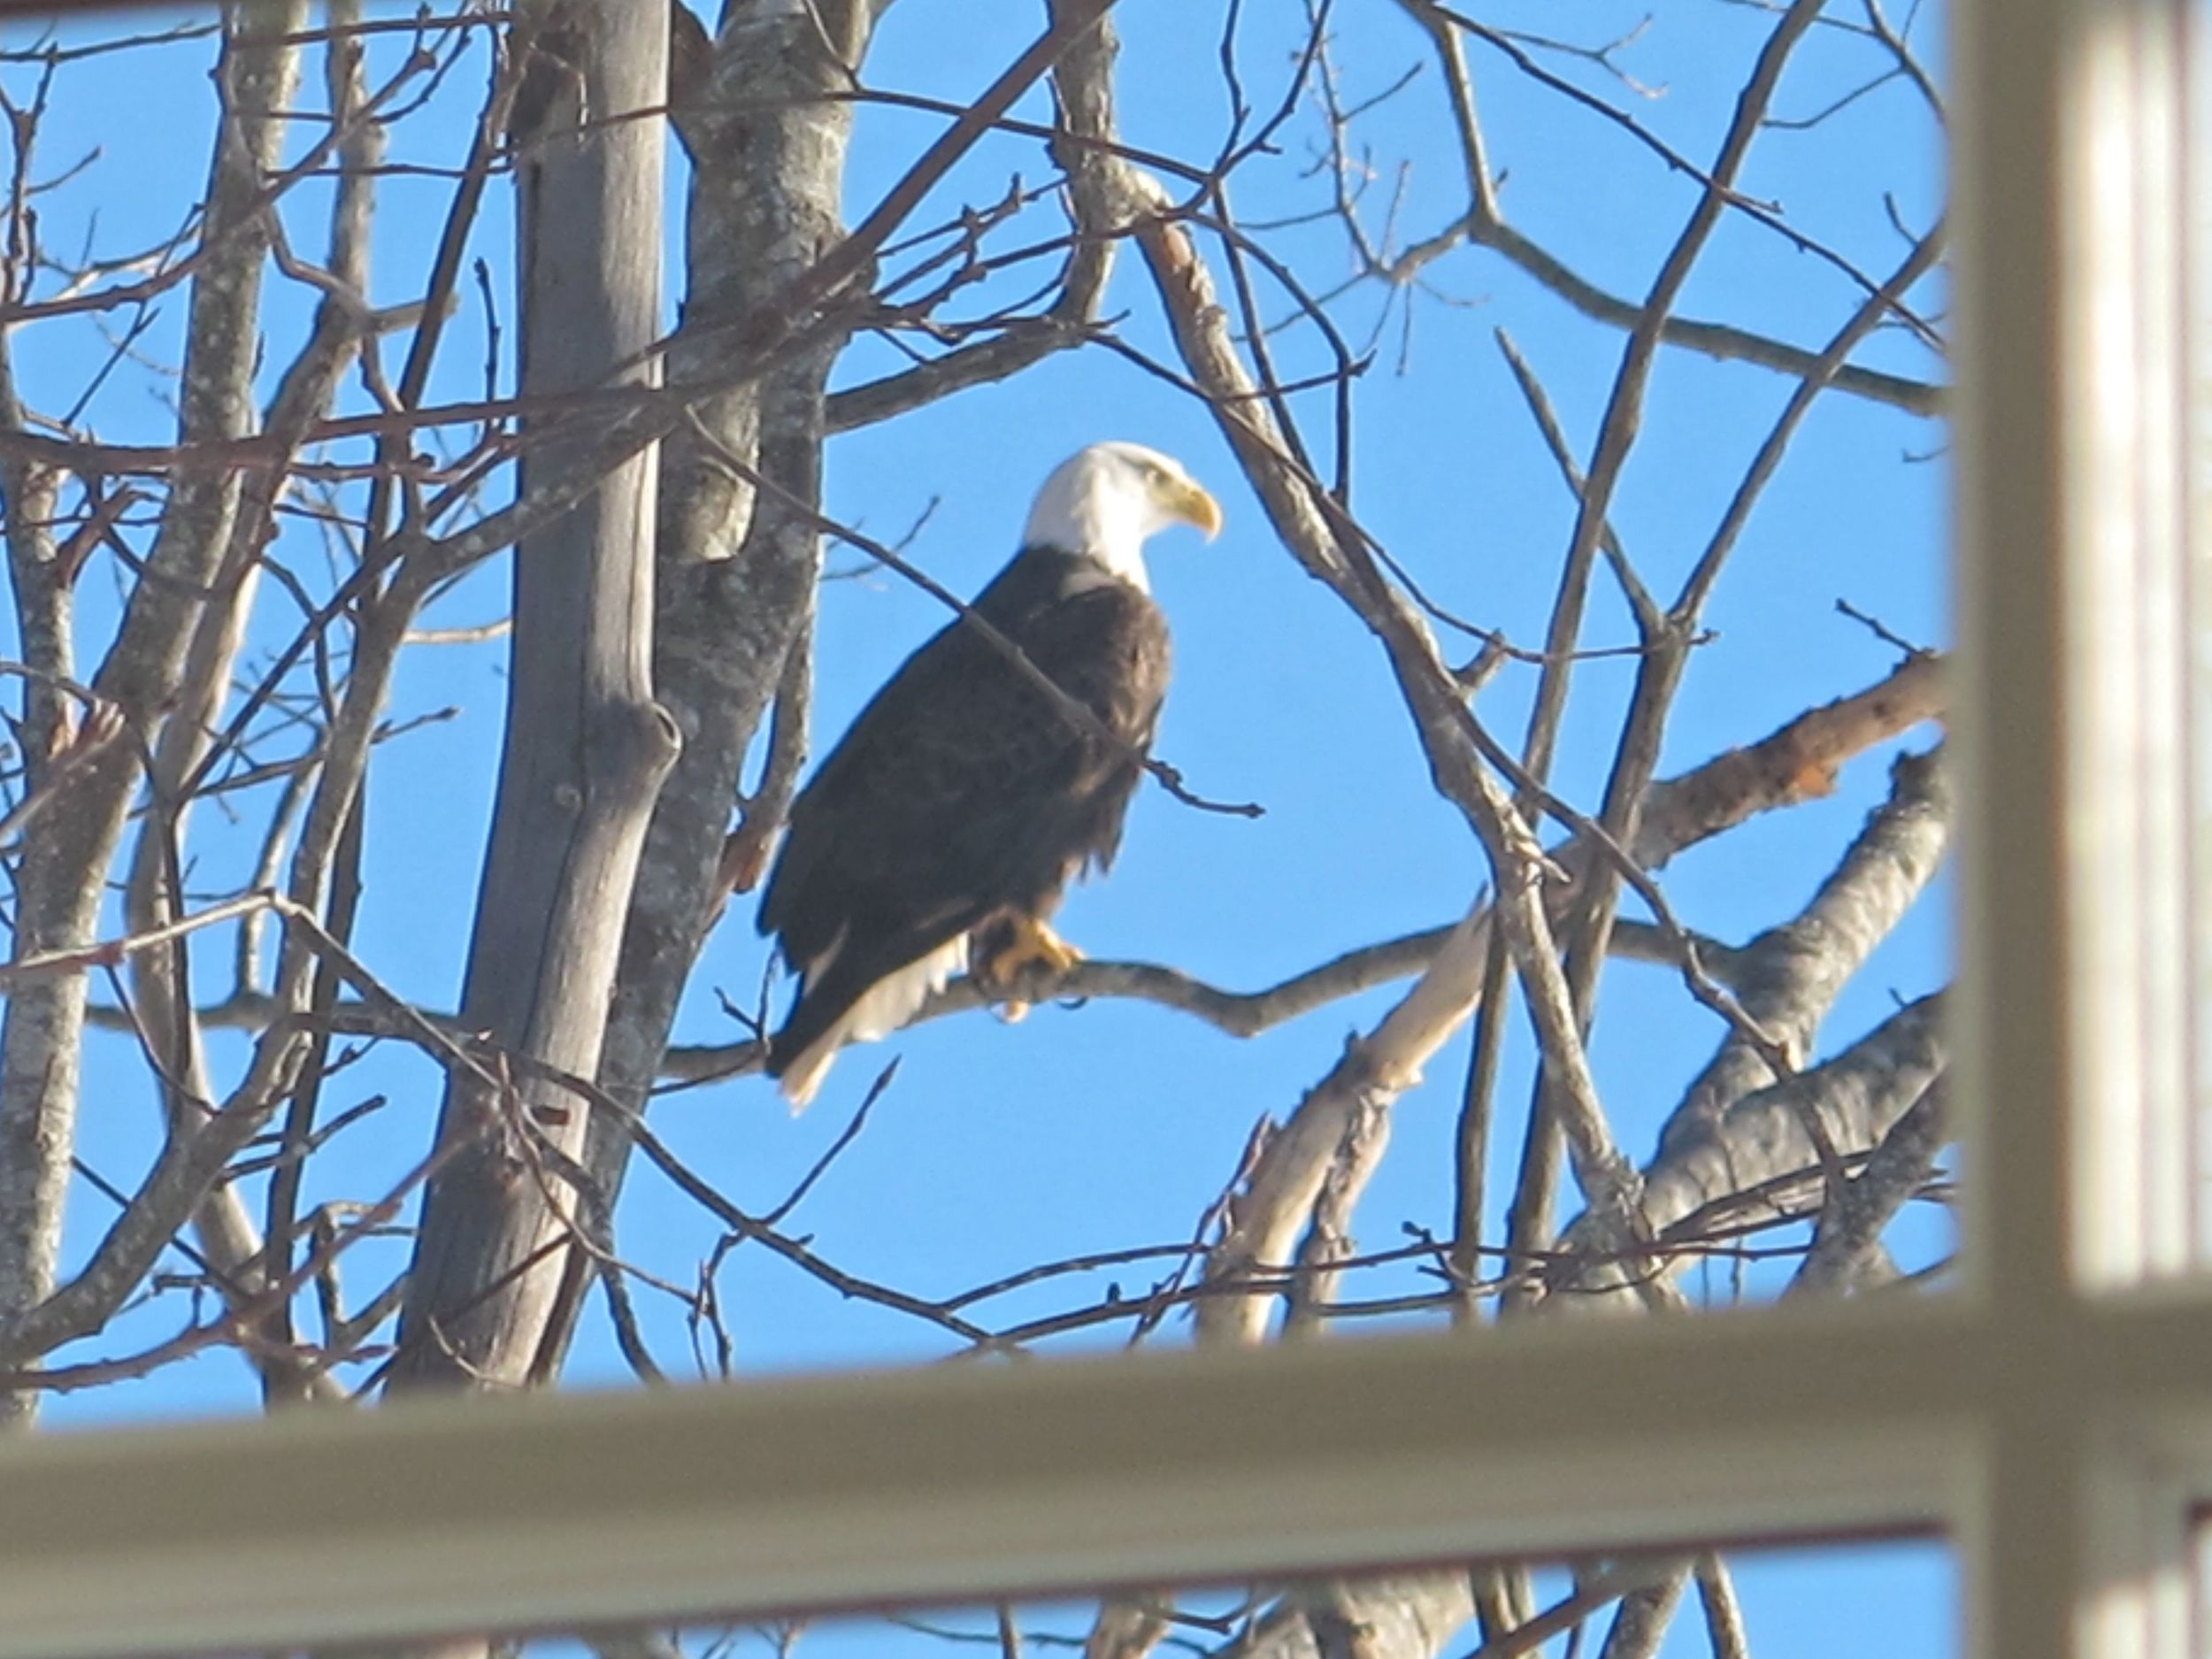 Two mature bald eagles have been flying around our house and perching in trees overlooking the water. They keep calling out to each other, as if strategizing.